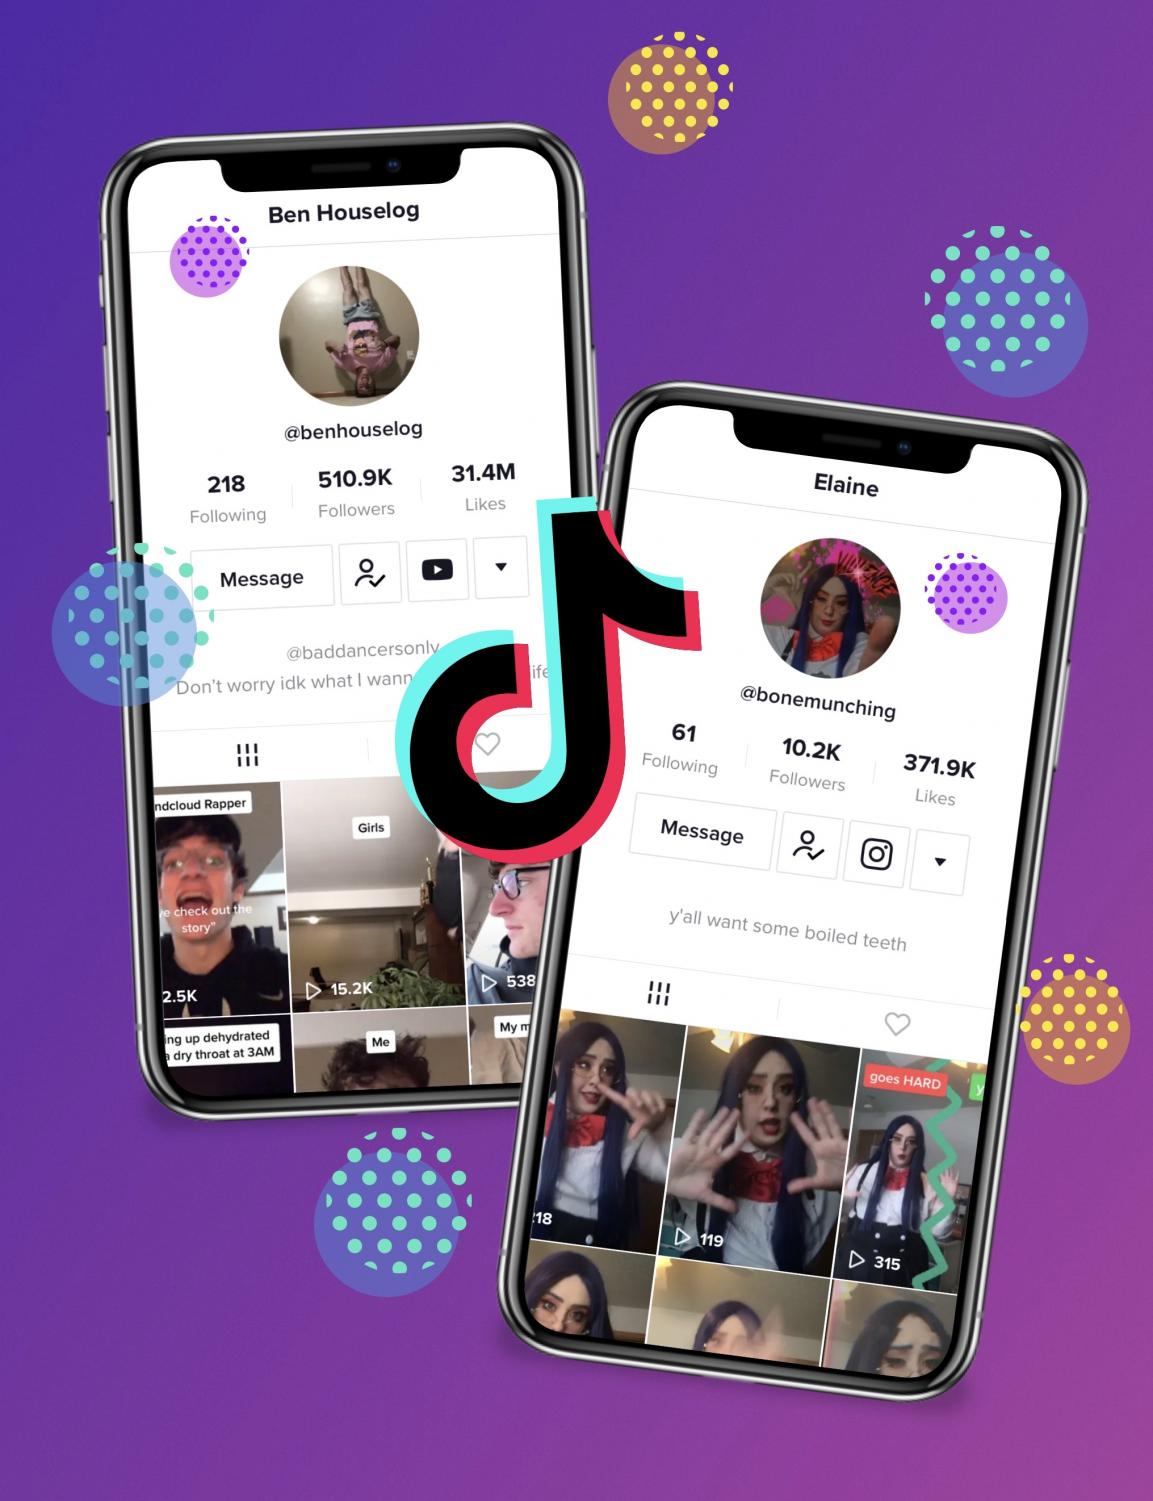 Ben Houselog and Elaine Brustkern's TikTok accounts are featured in this infographic.